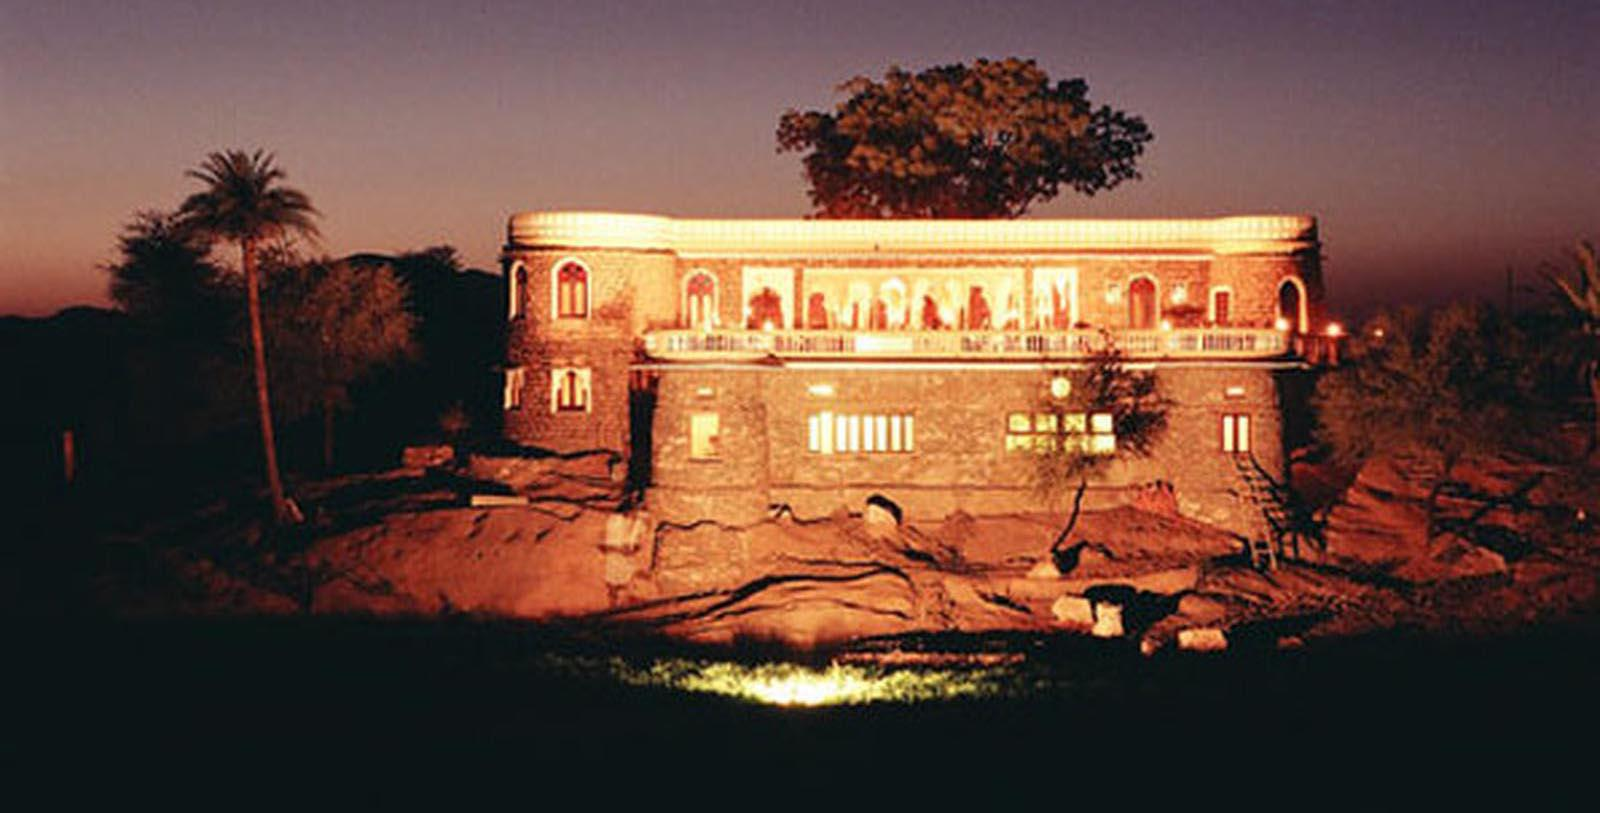 Historic Image of Hotel Exterior Fort Seengh Sagar, 1670, Member of Historic Hotels Worldwide, in Deogarh, India, Discover